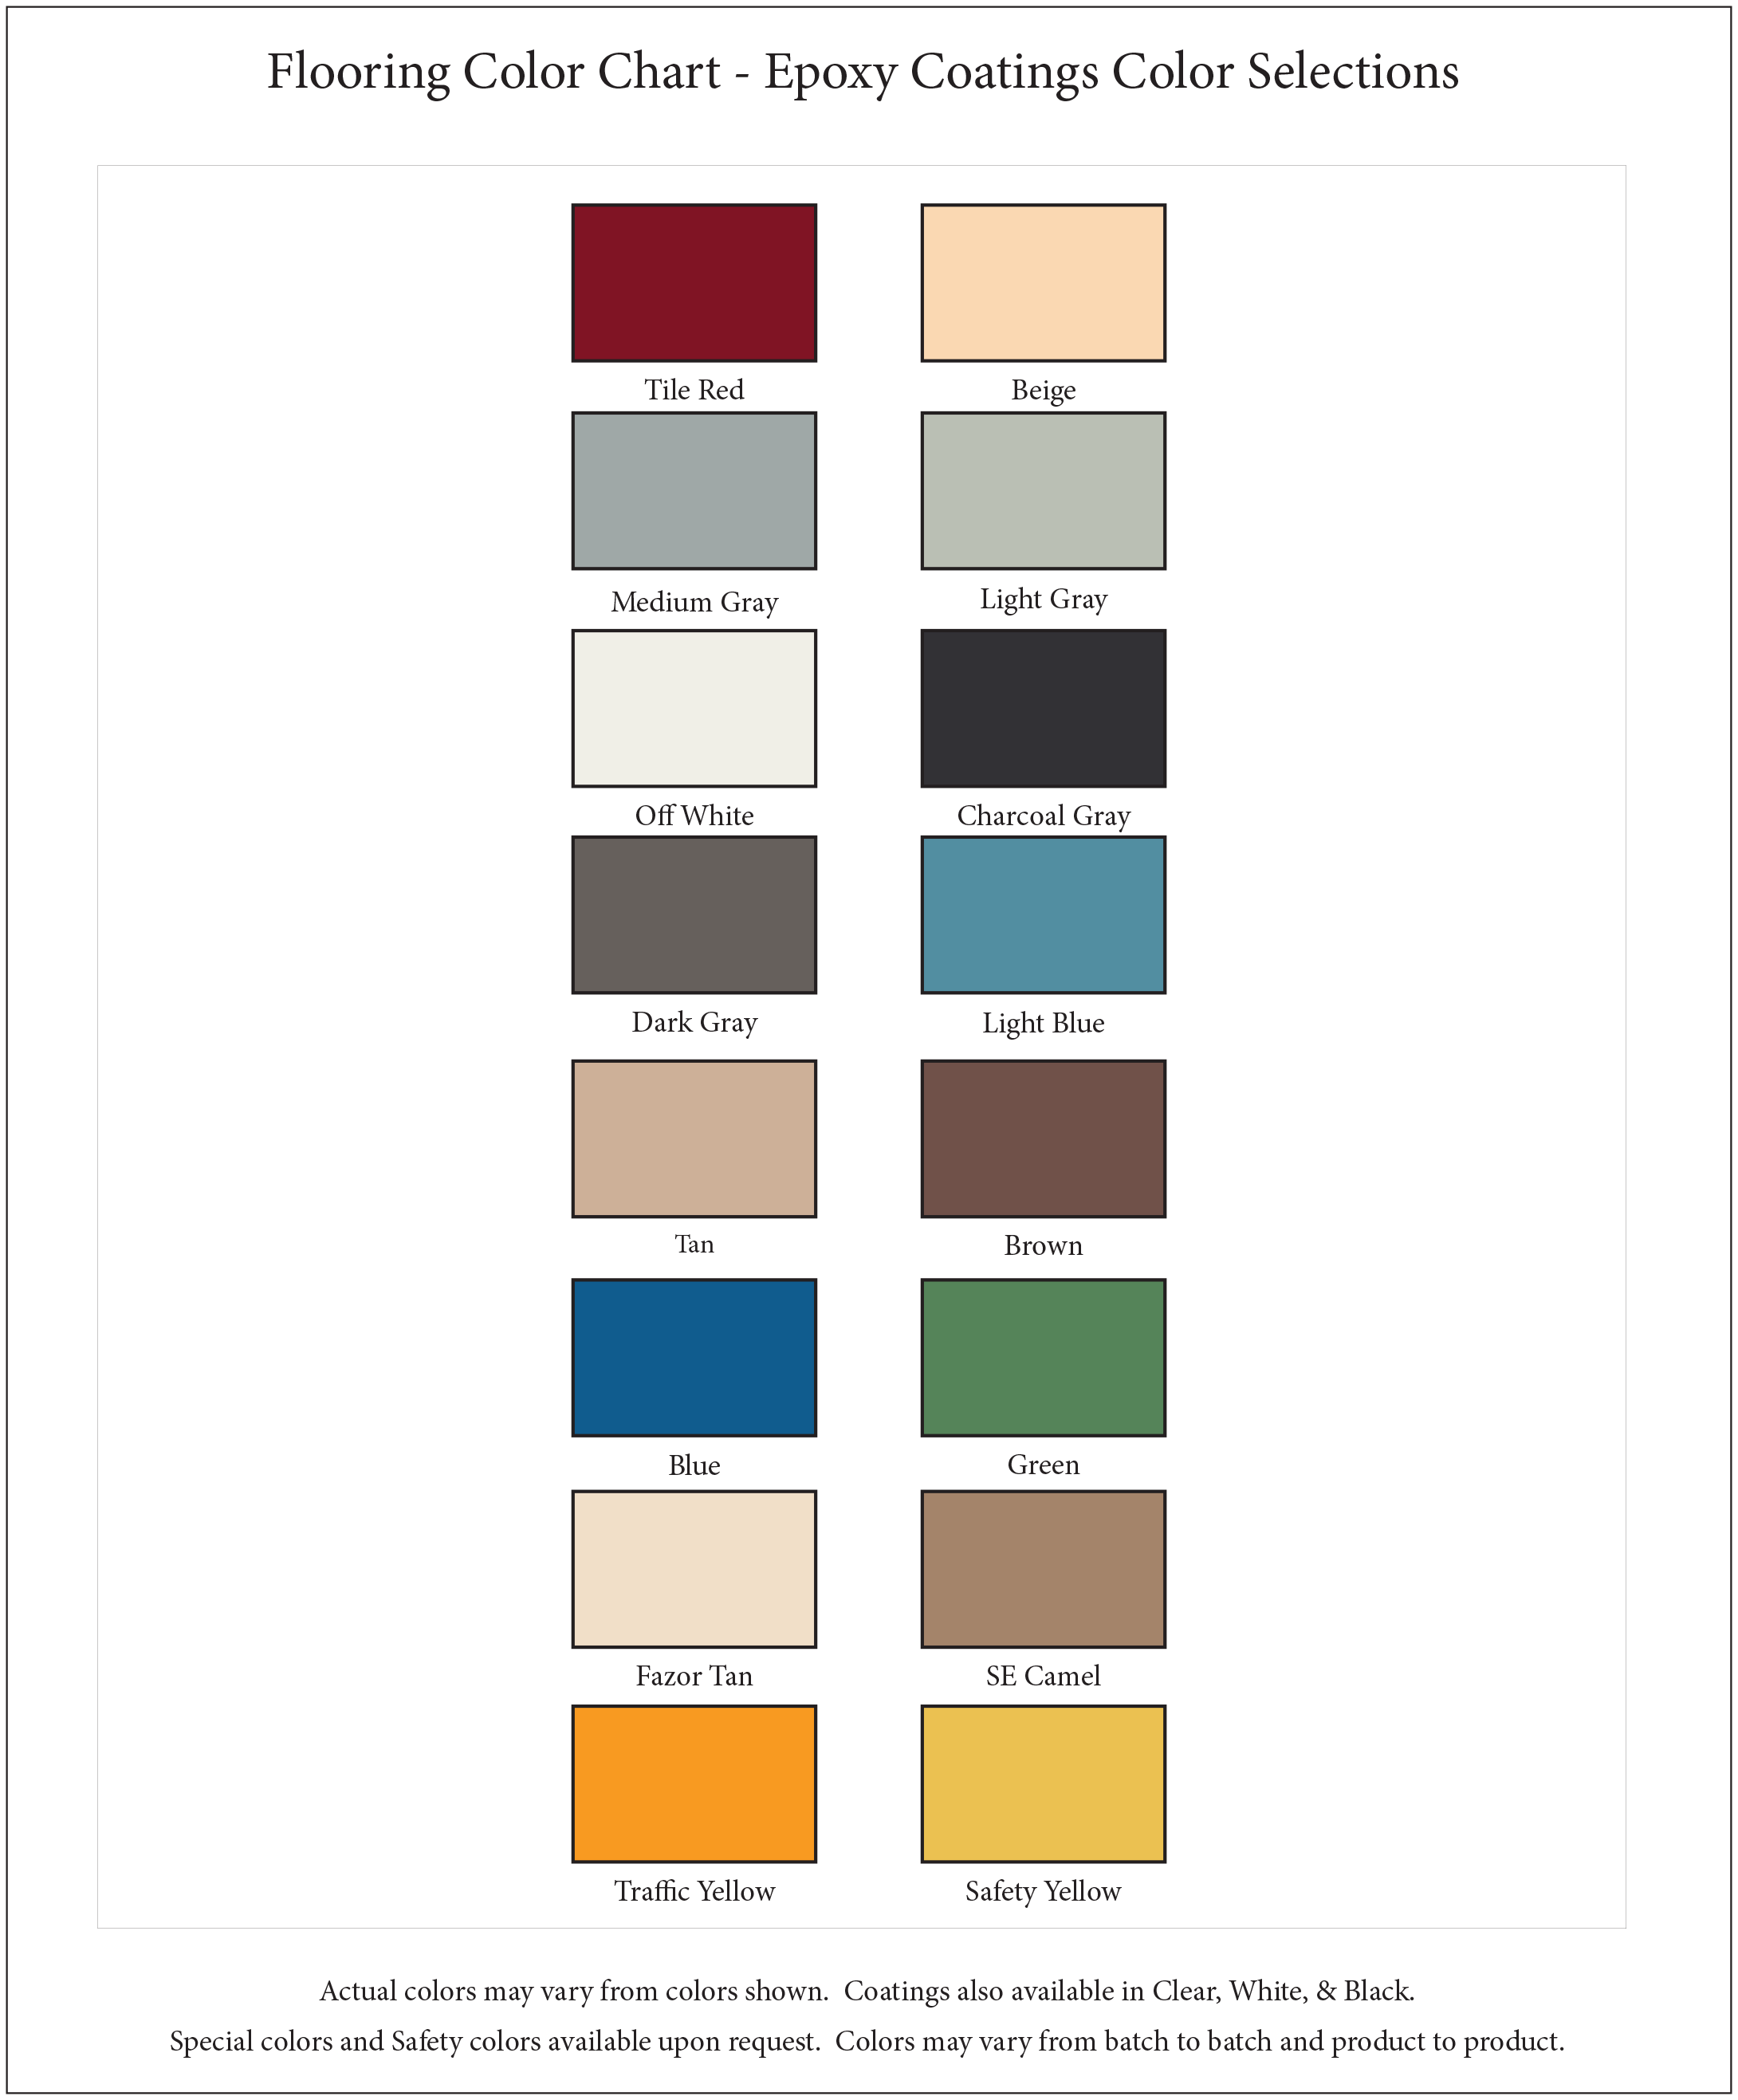 https://www.vseal.com/media/catalog/product/cache/1/image/9df78eab33525d08d6e5fb8d27136e95/i/n/industra-coat_color_chart.png